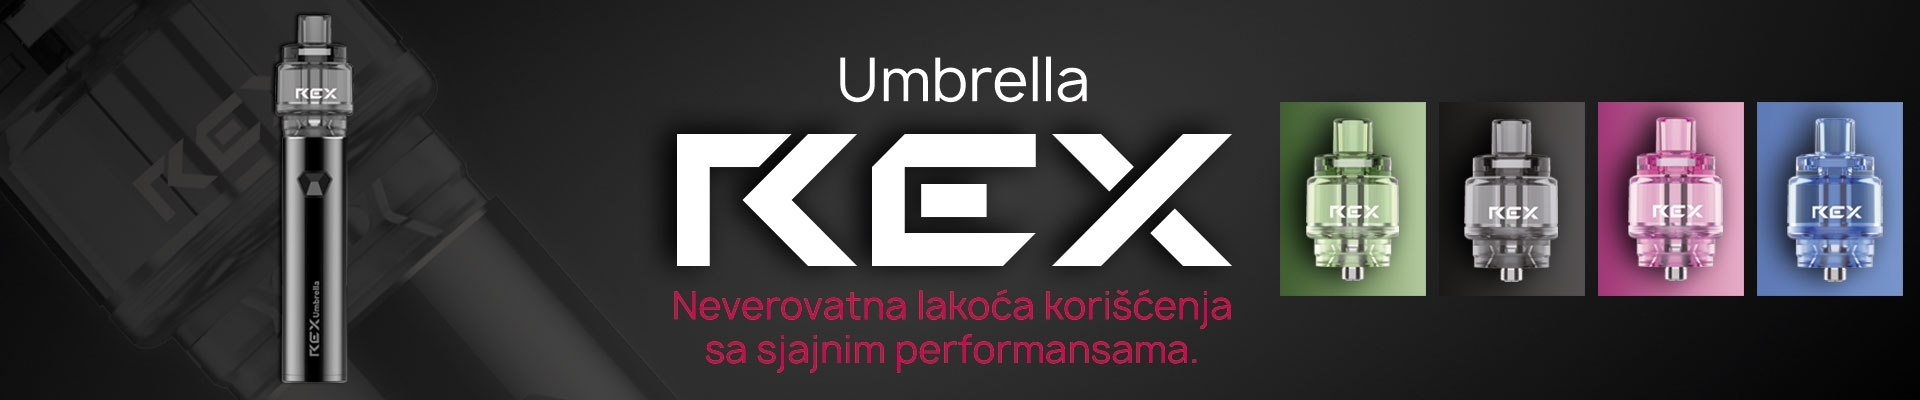 Umbrella REX elektronska cigareta